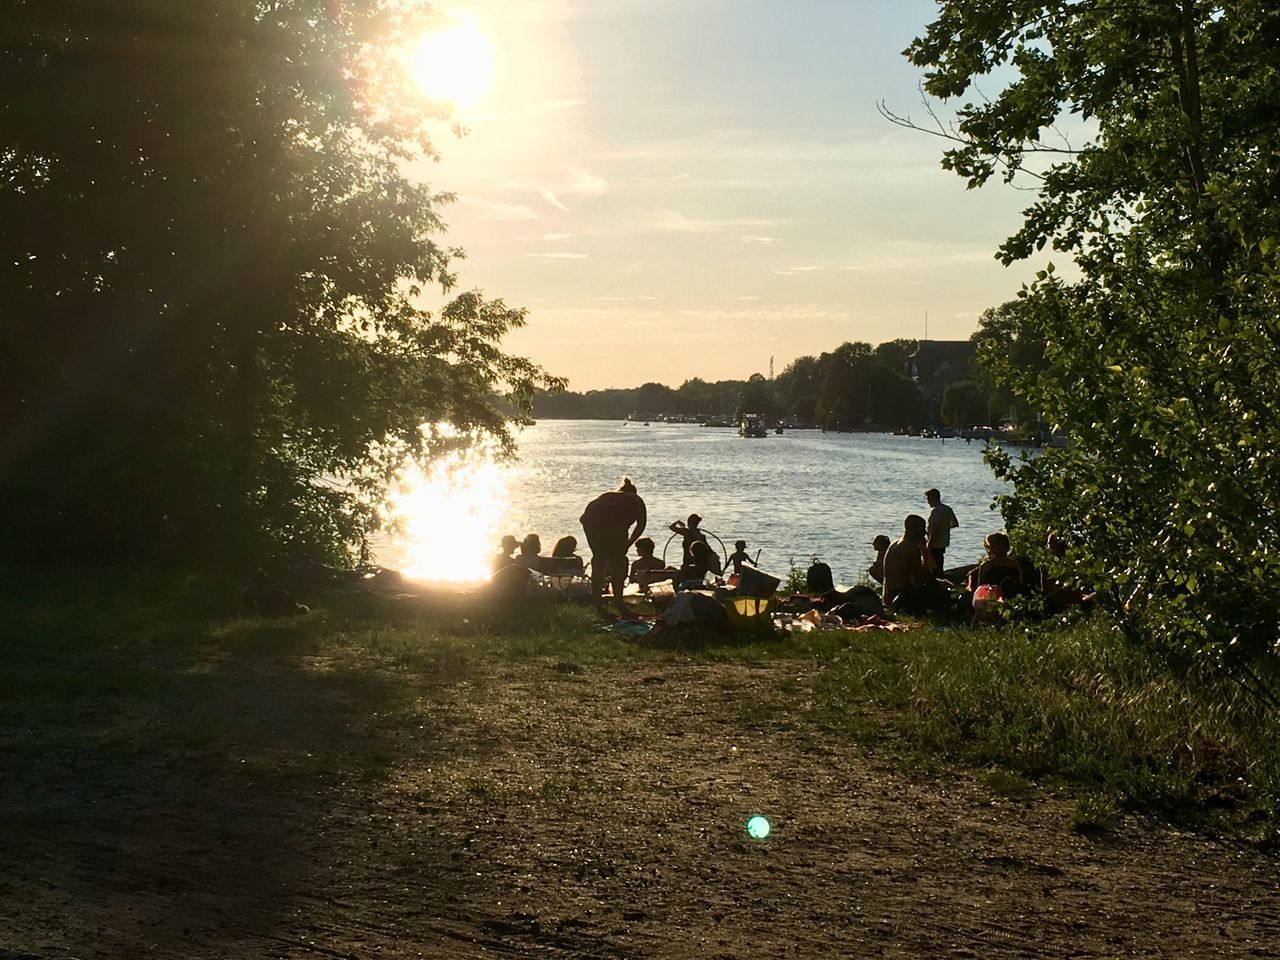 PEOPLE SITTING ON SHORE AGAINST SKY DURING SUNSET